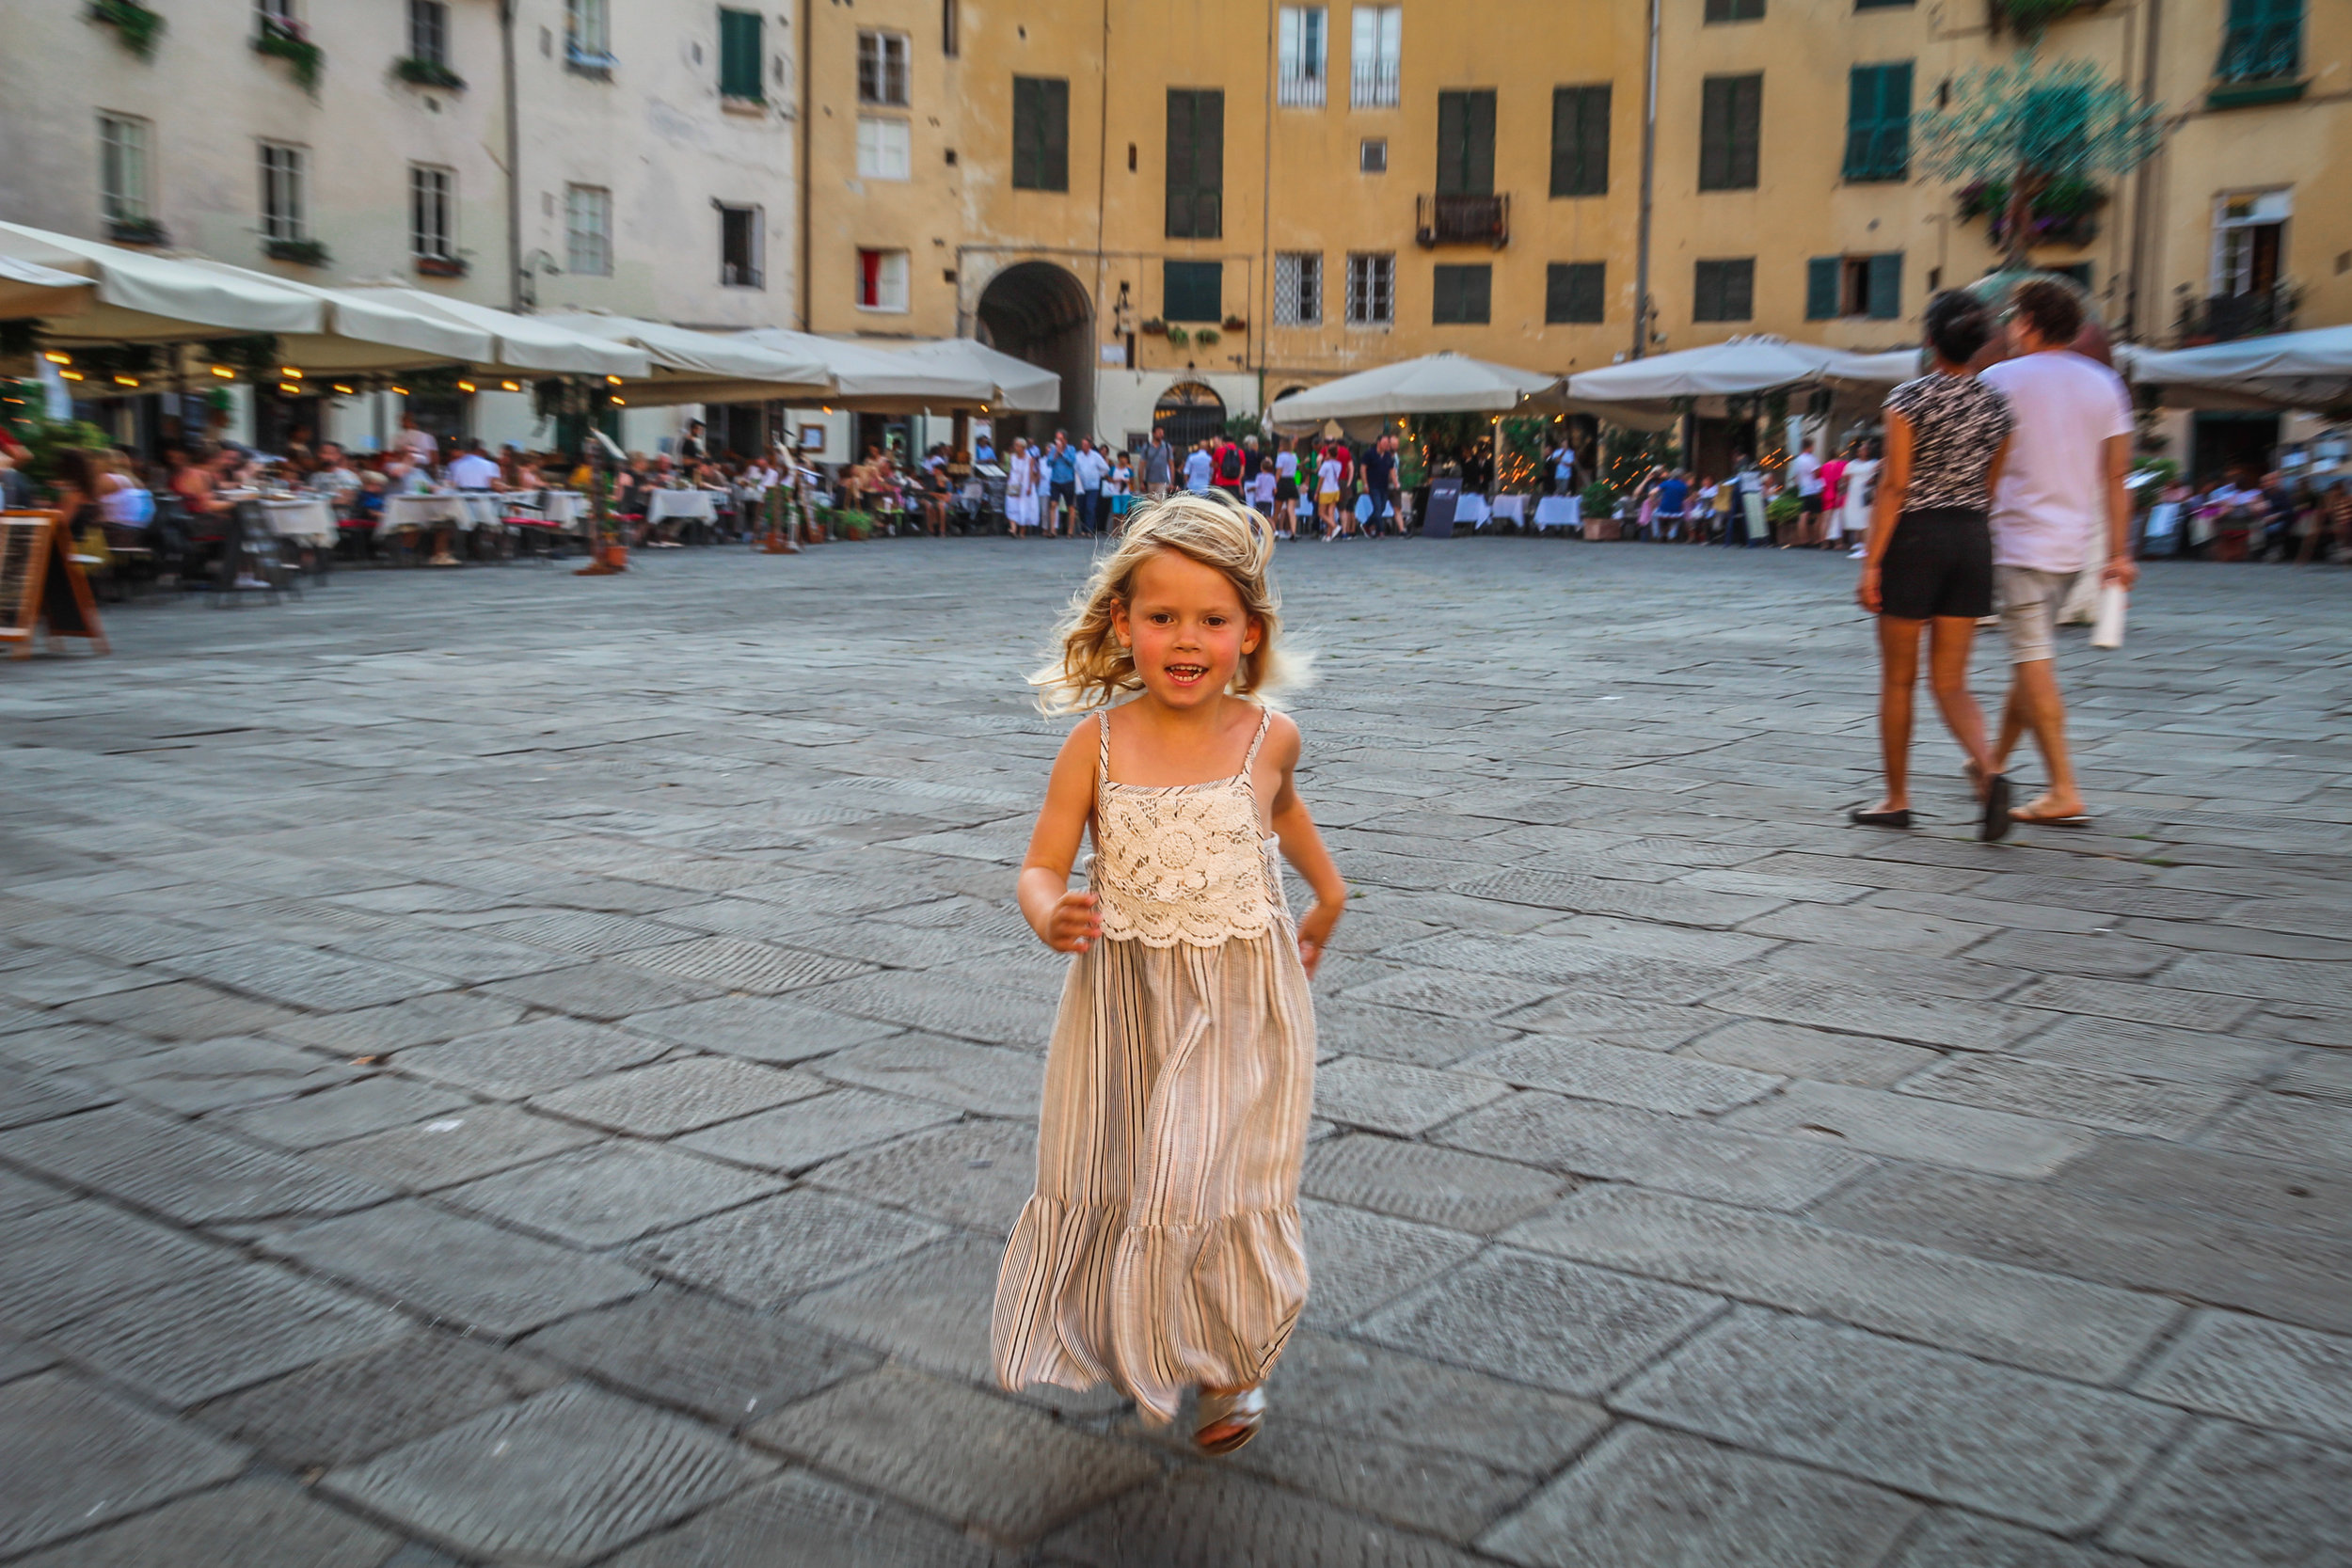 Lucca_withkidsontheroad-11.jpg